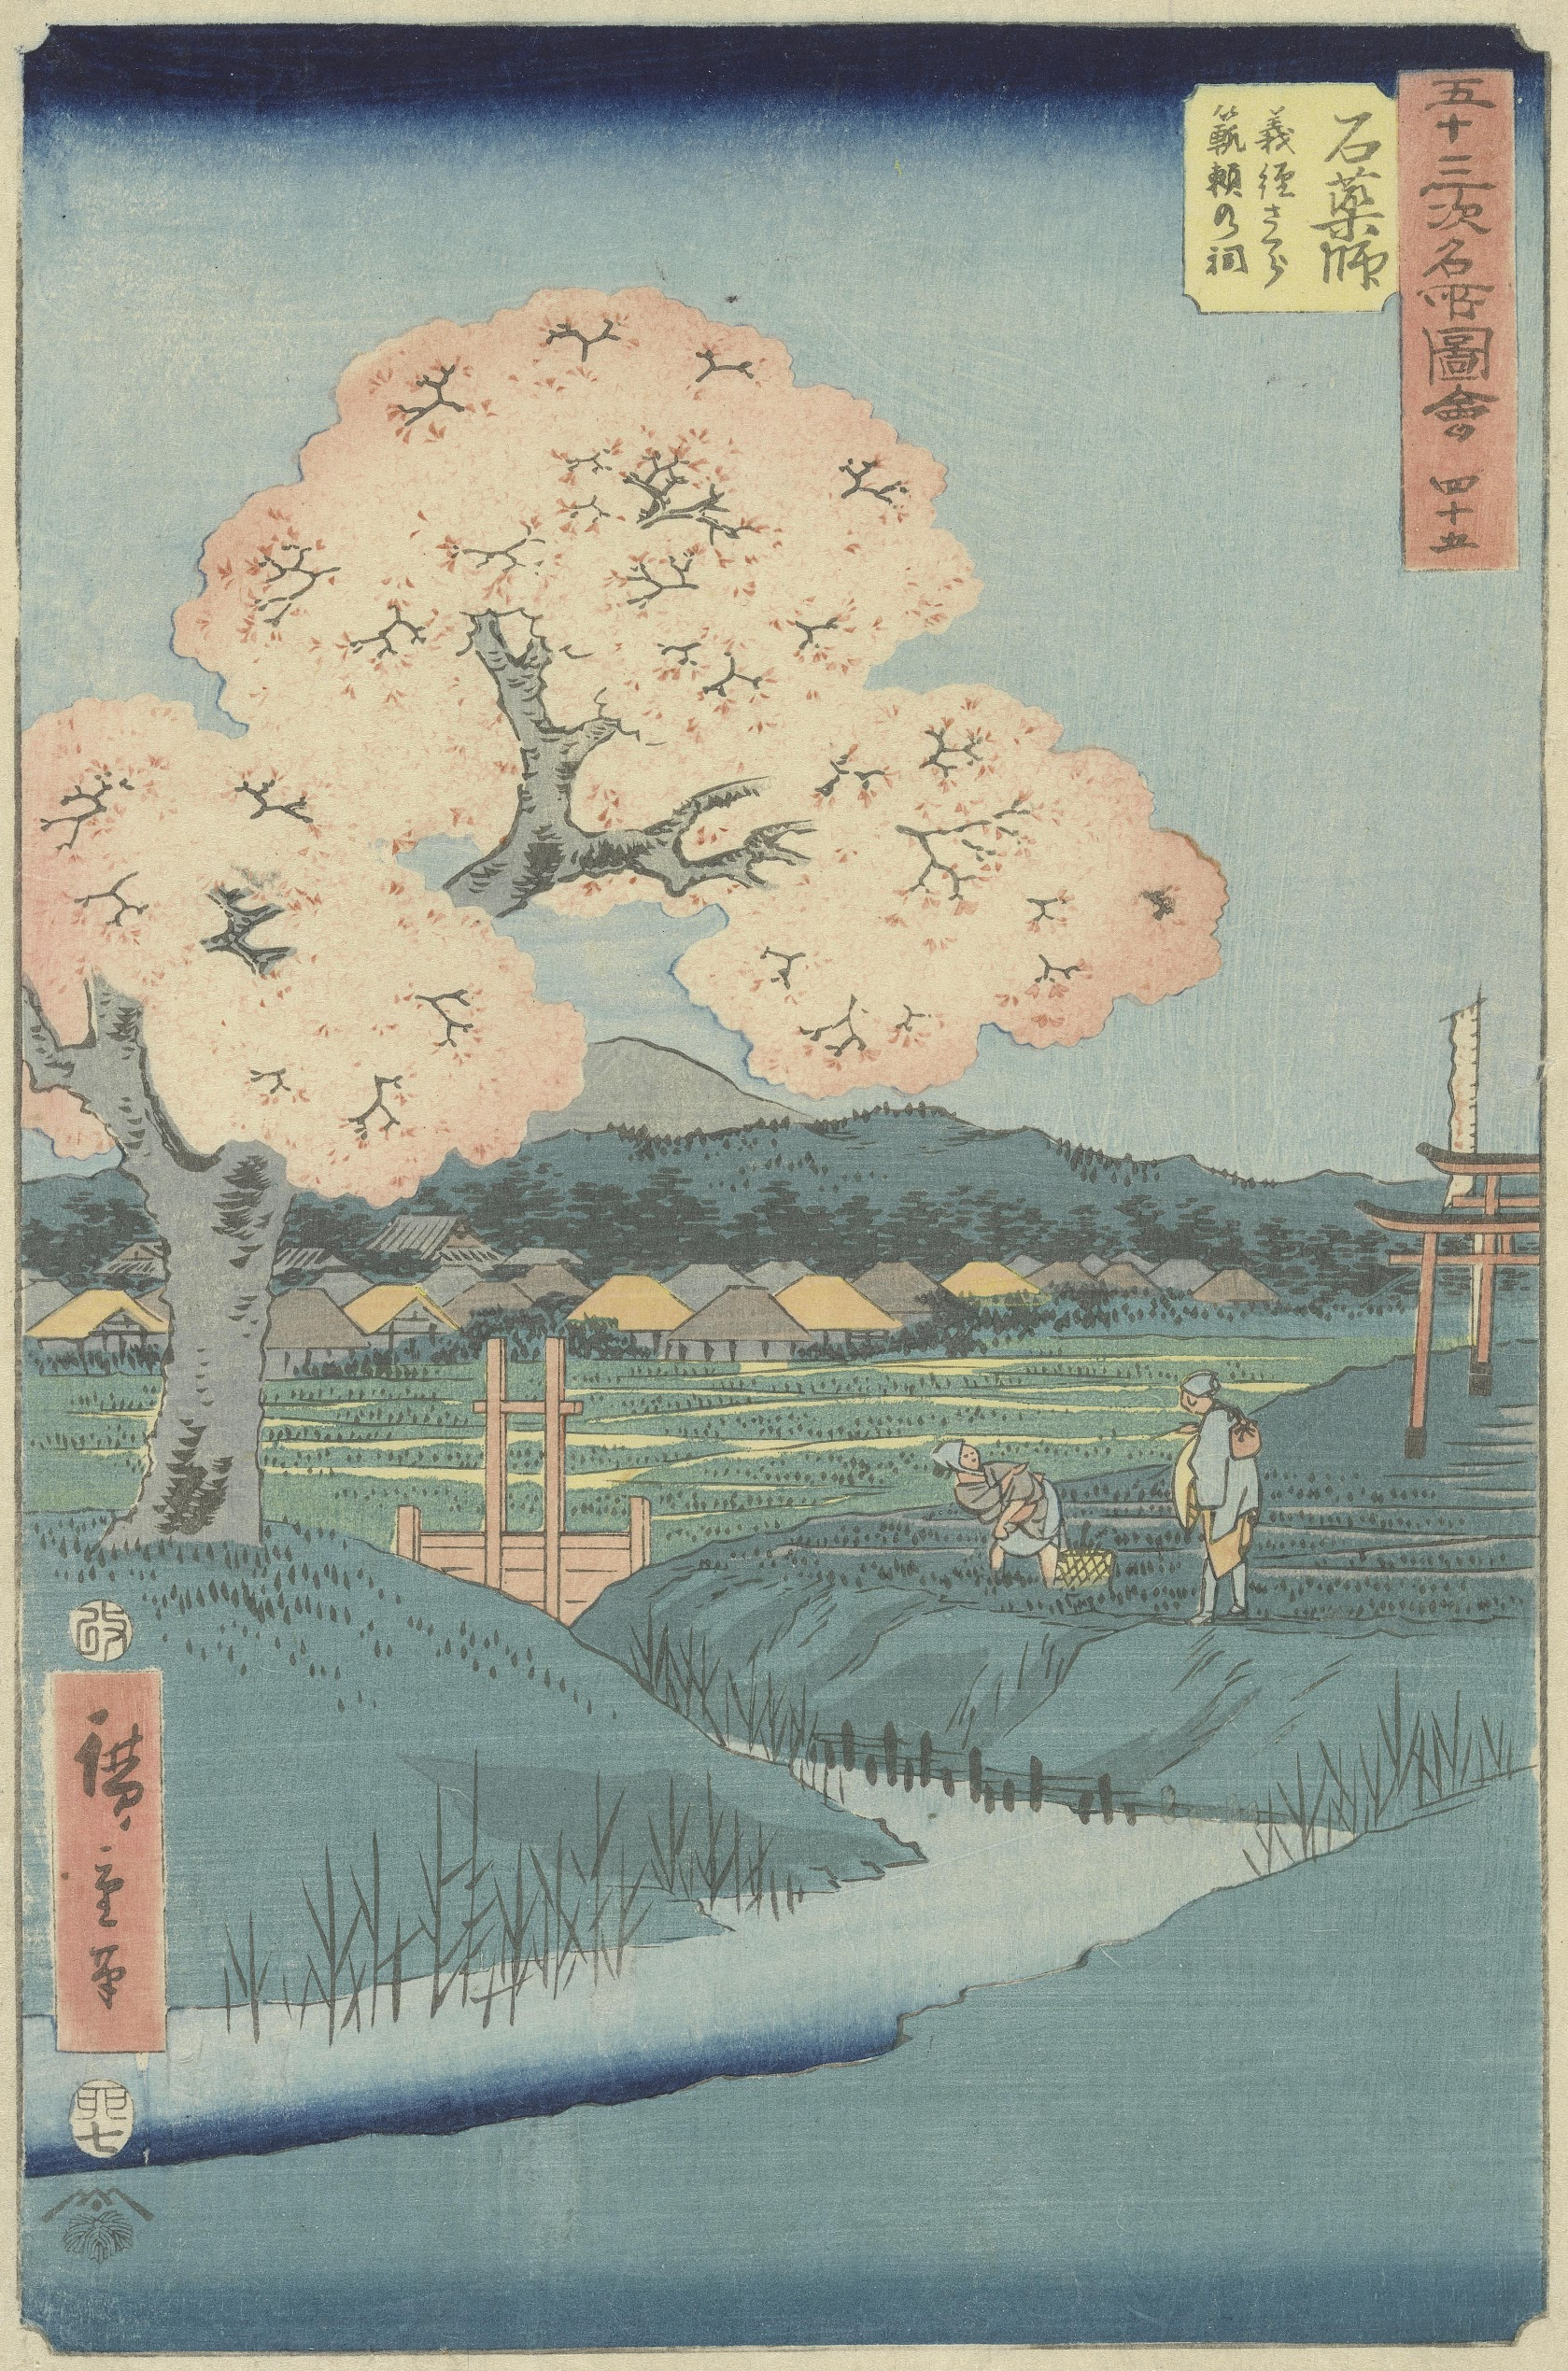 Ishiyakushi: The Yoshitsune Cherry Tree near the Noriyori Shrine, no. 45 from the series Collection of Illustrations of Famous Places near the Fifty-Three Stations [Along the Tōkaidō] Edo, seventh month 1855 Utagawa Hiroshige (1797 - 1858)